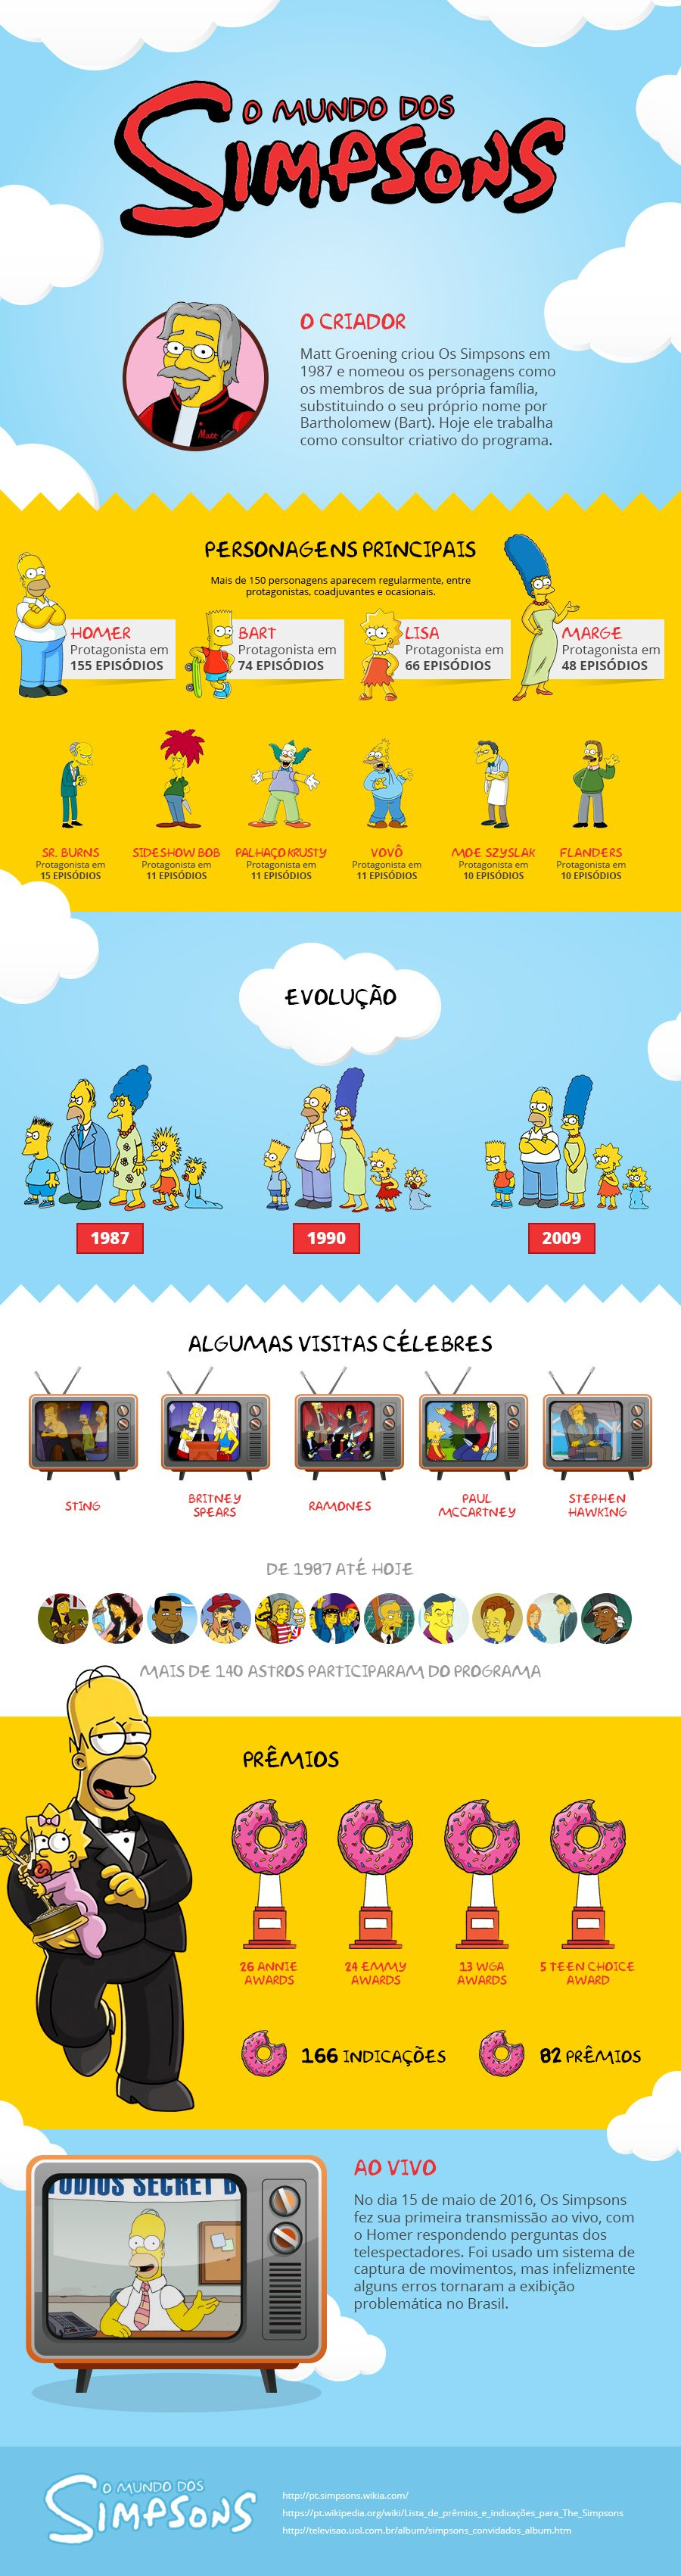 O mundo dos simpsons